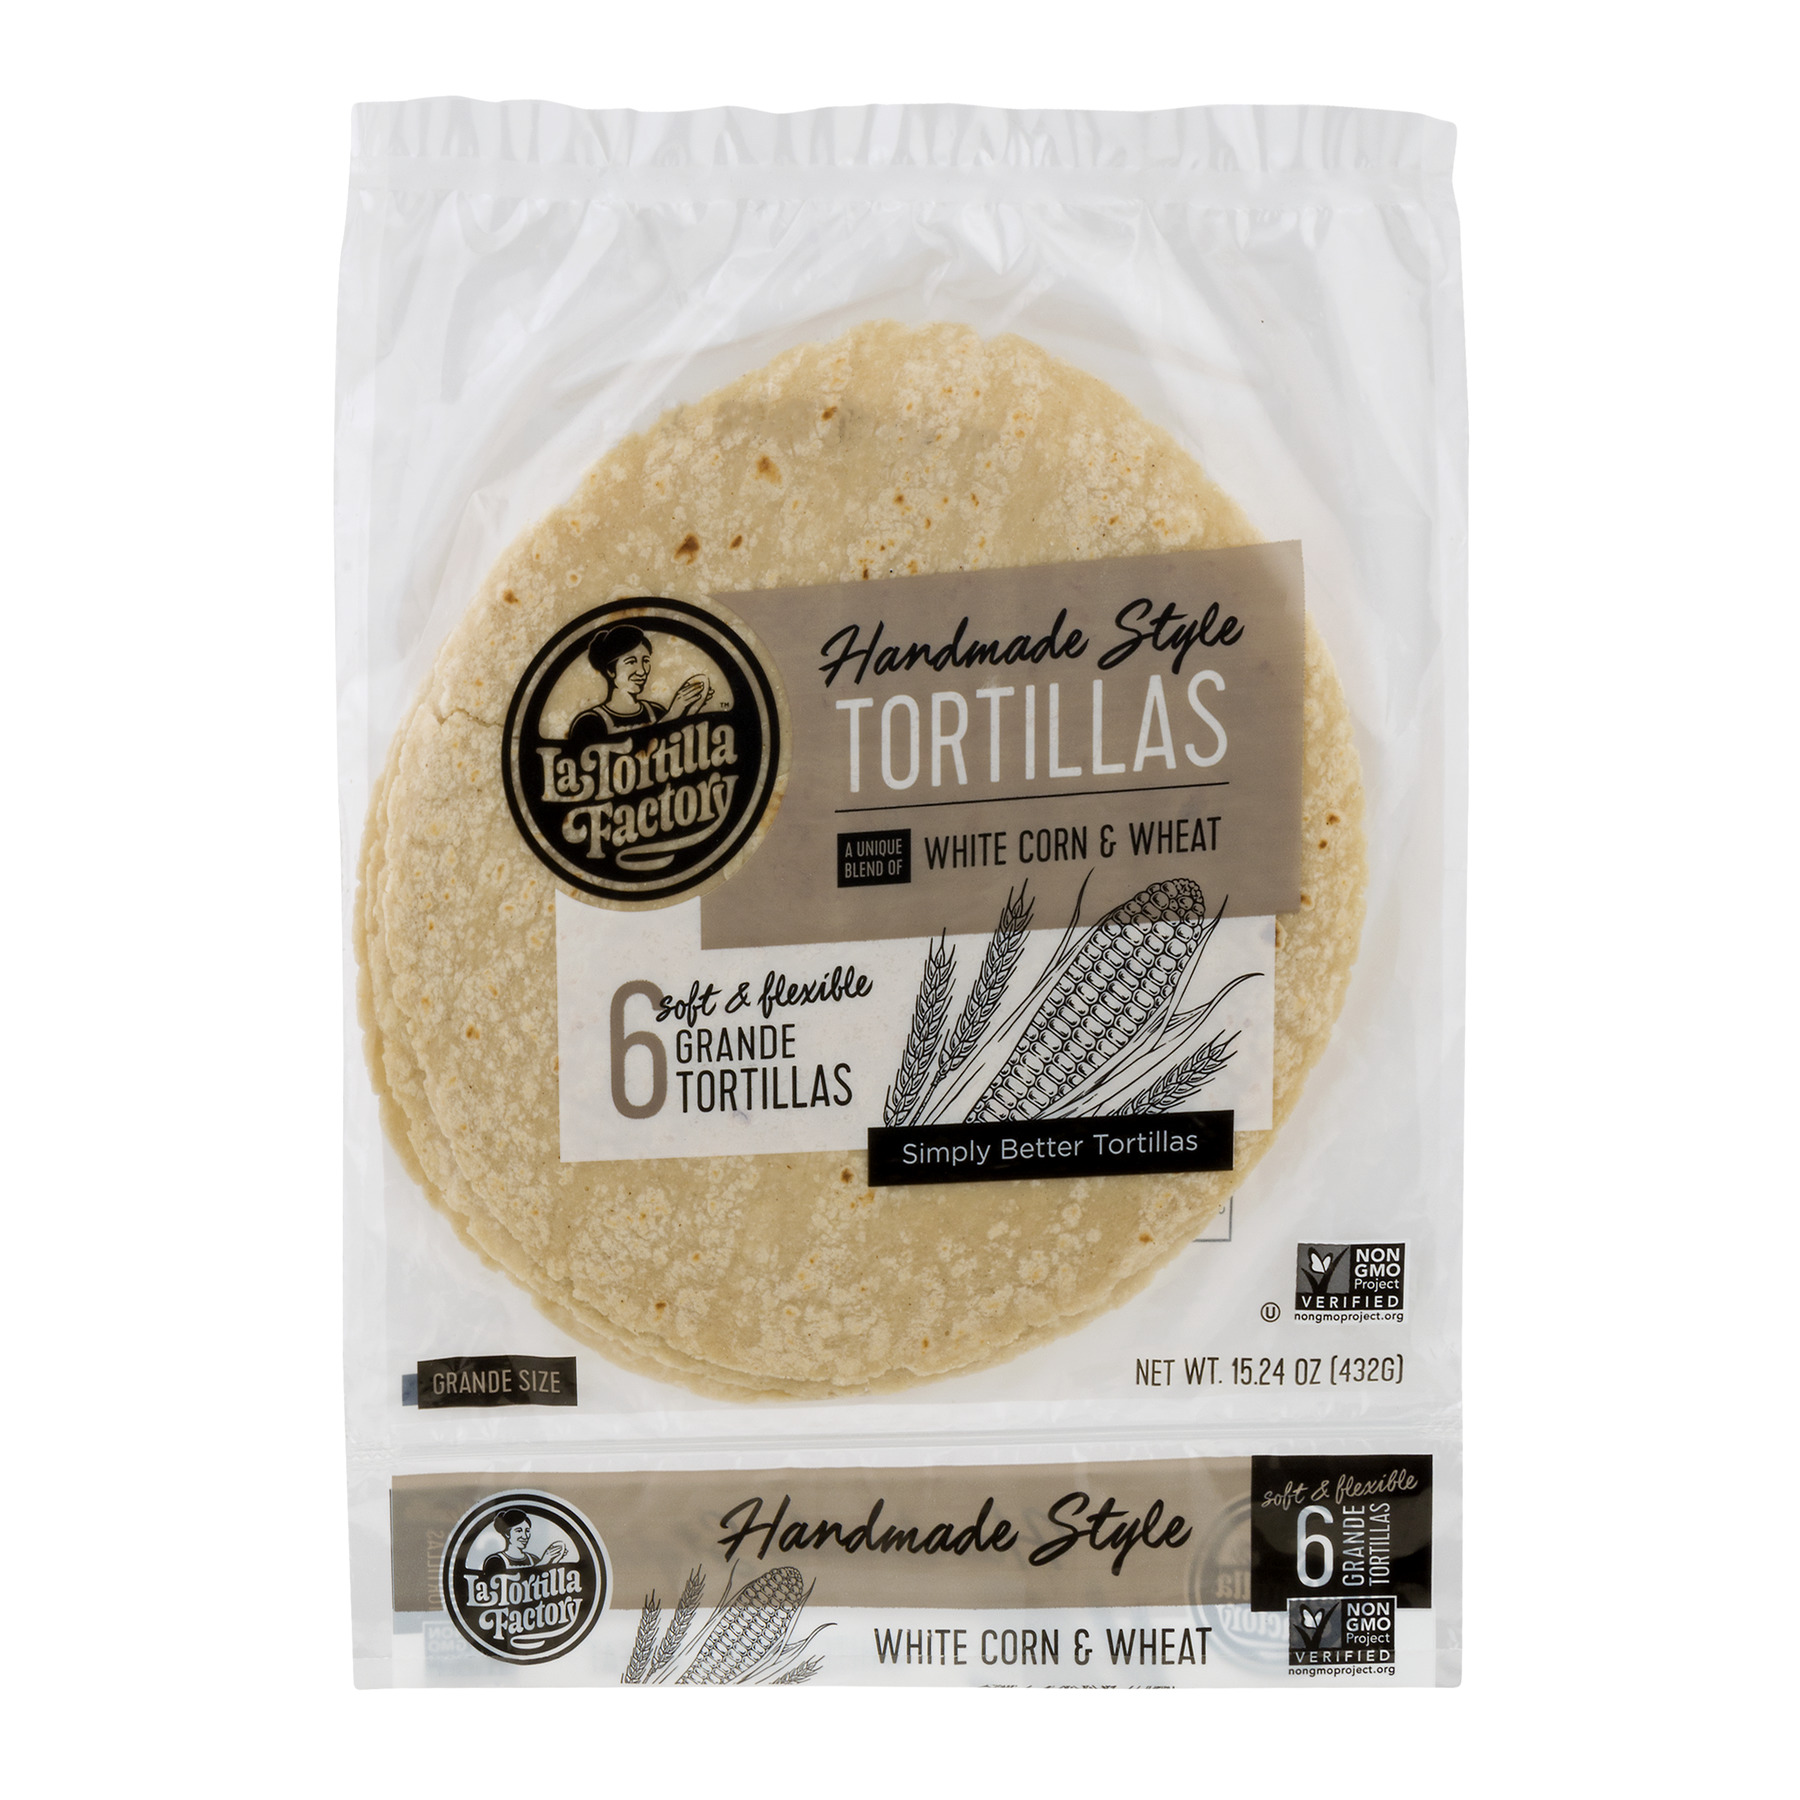 La Tortilla Factory Handmade Style Tortillas White Corn & Wheat  - 6 CT